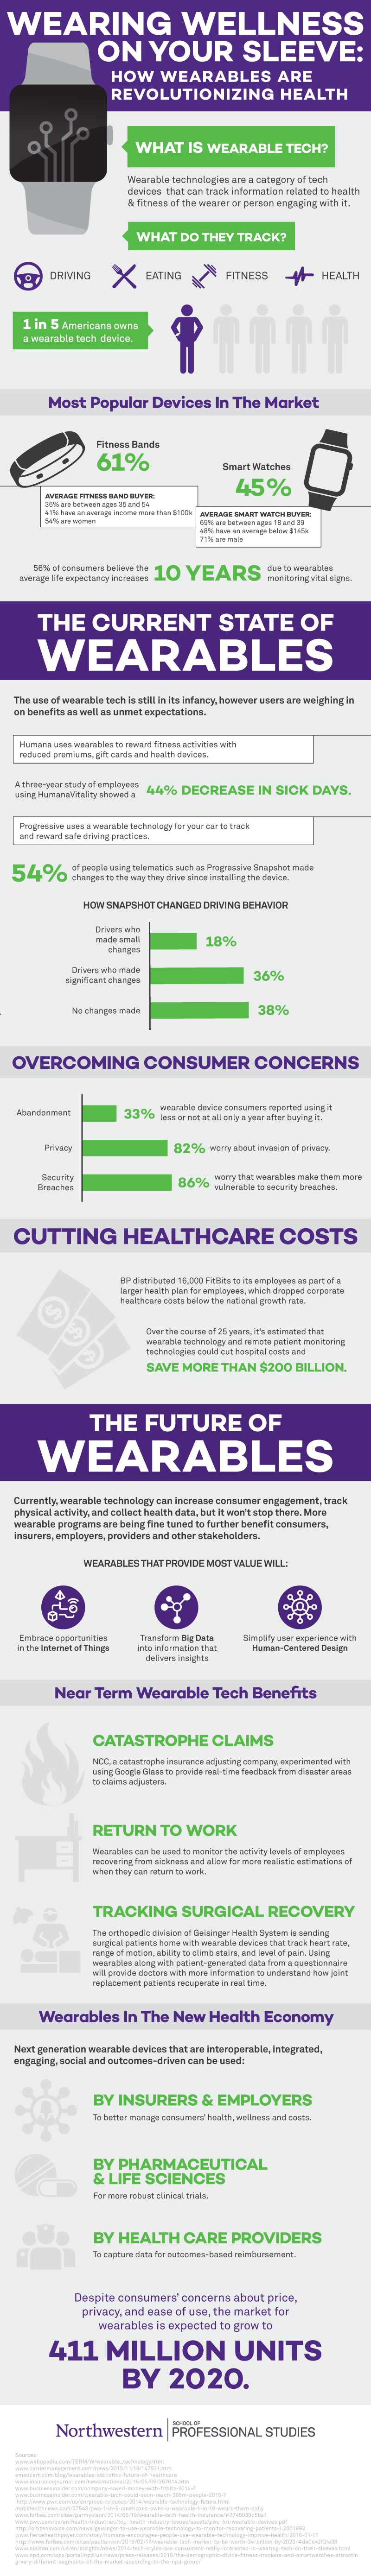 northwestern-univ-study-wearable-tech-and-insurance